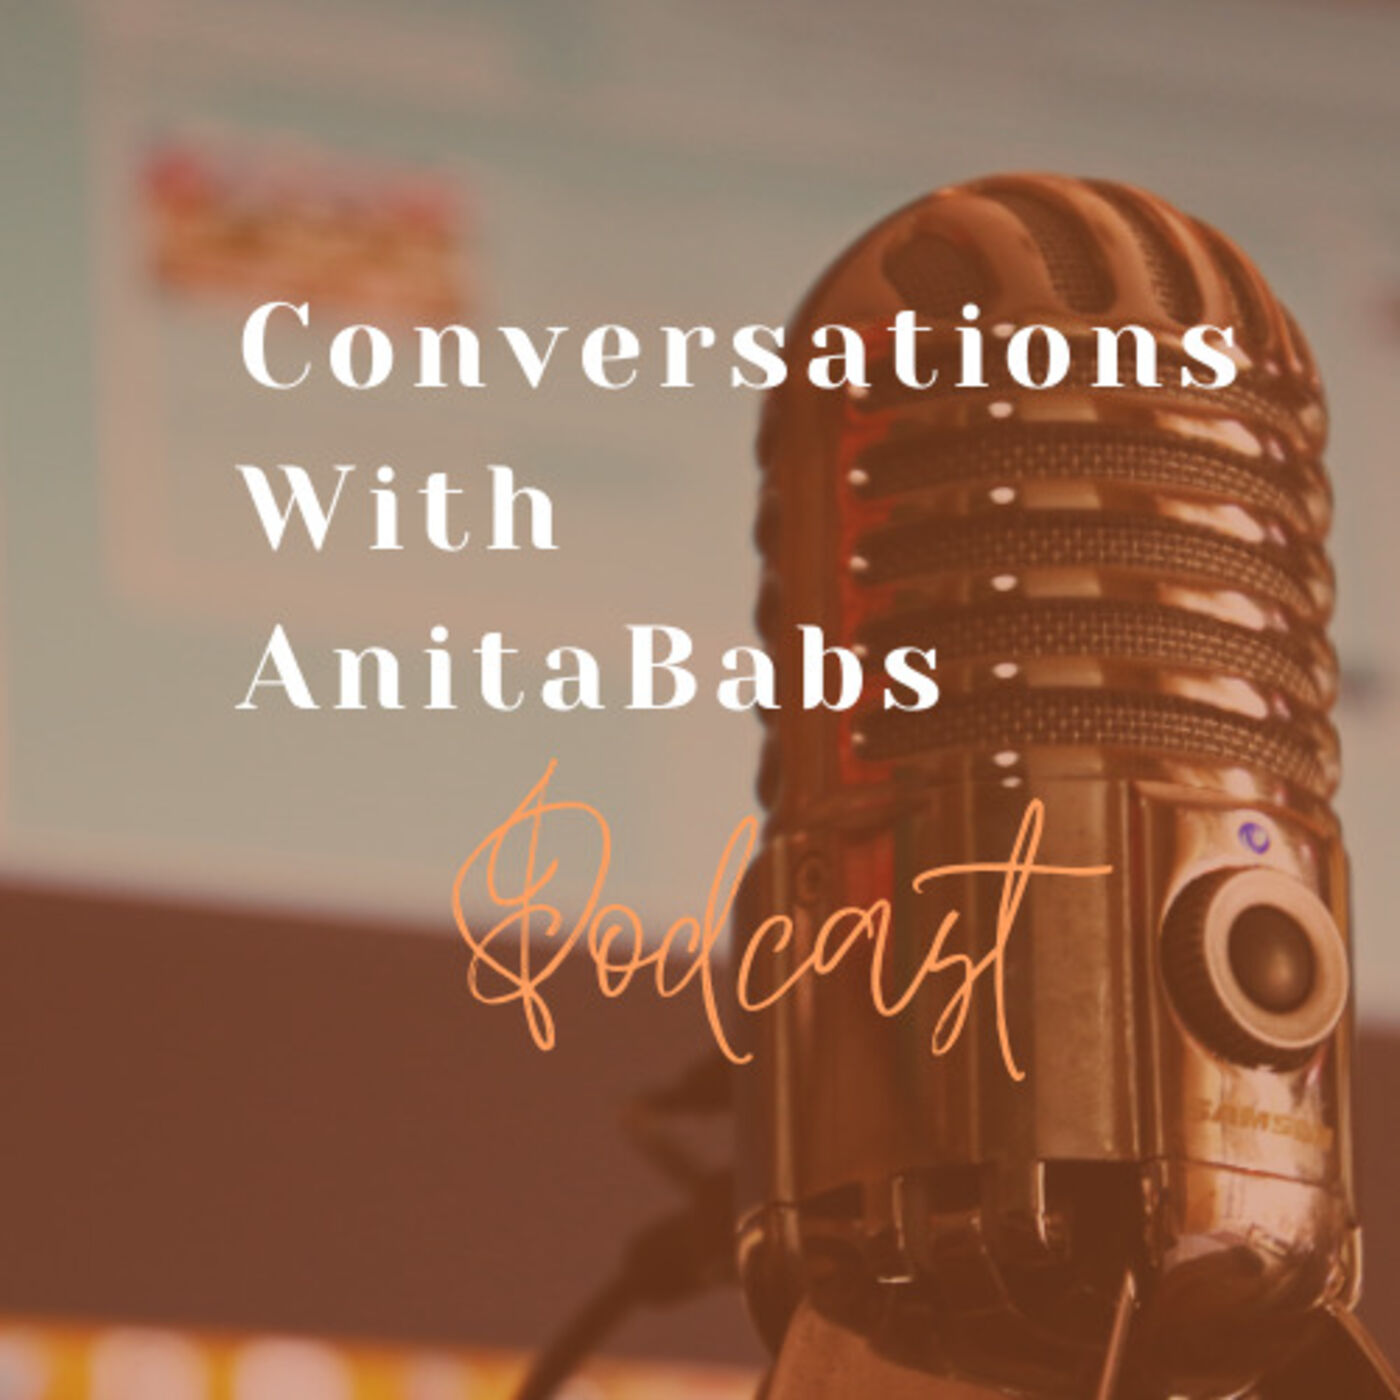 Conversations With Anita Babs! on Jamit